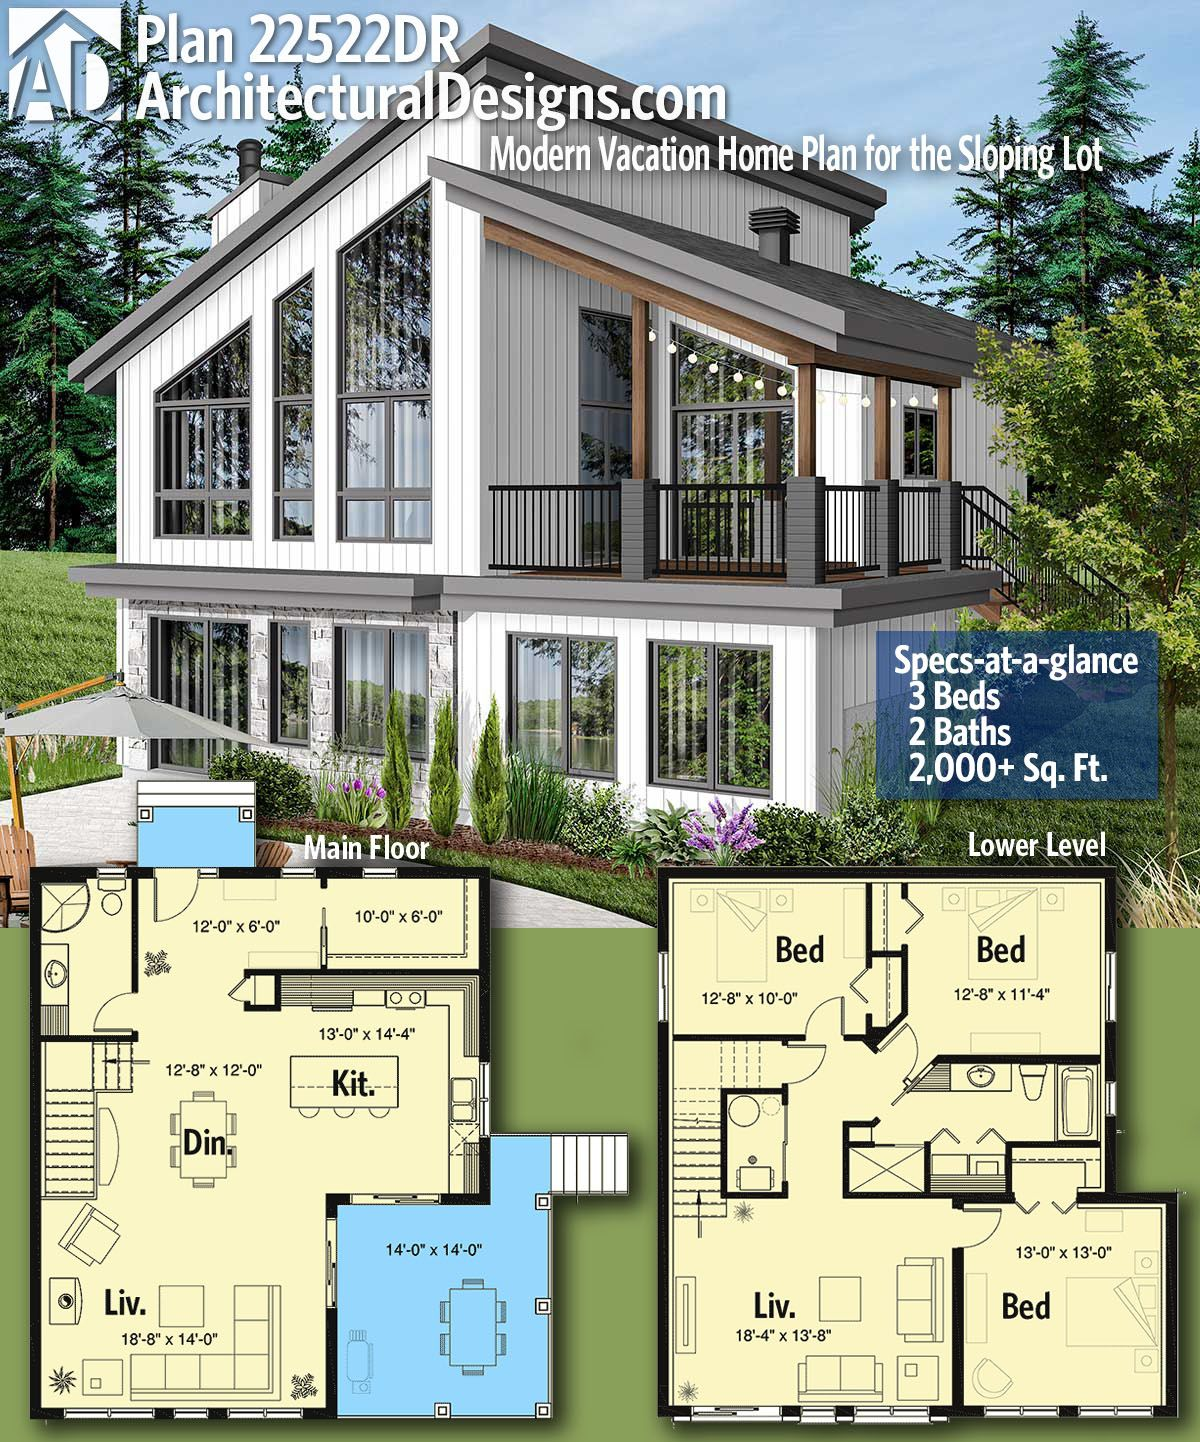 Plan 22522dr Modern Vacation Home Plan For The Sloping Lot House Layout Plans Architectural Design House Plans New House Plans